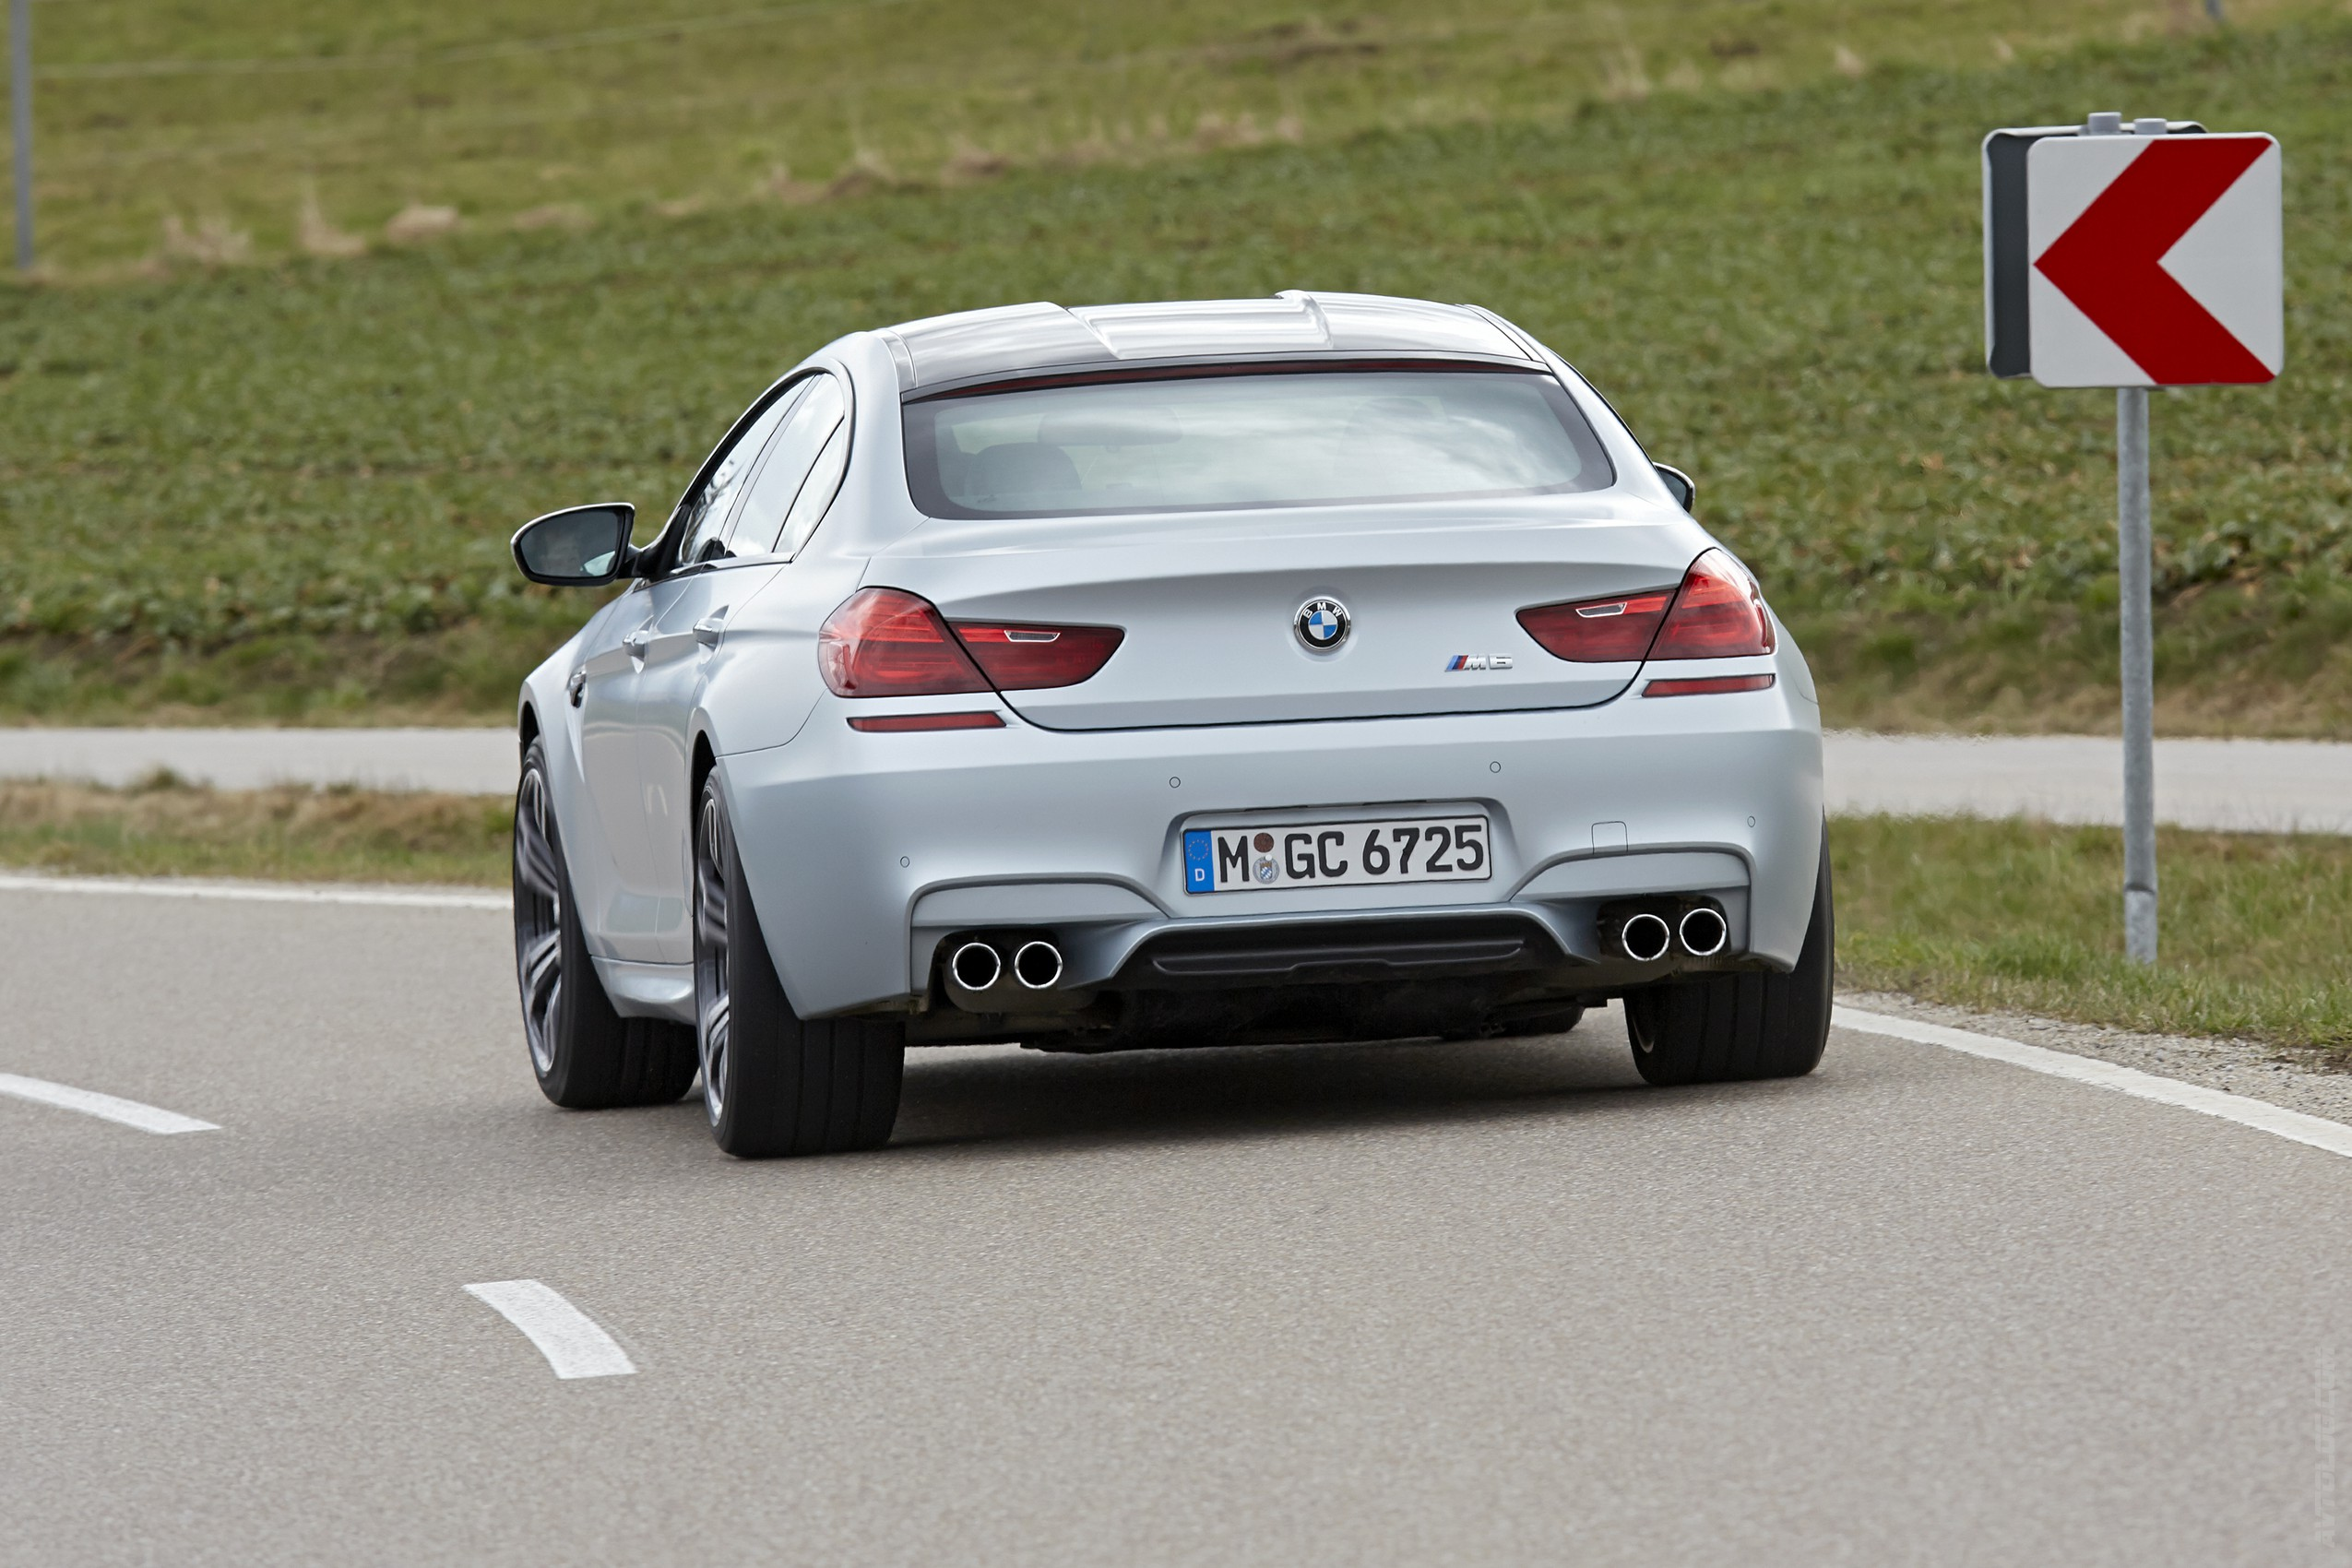 2019 BMW M6 Gran Coupe photo - 6